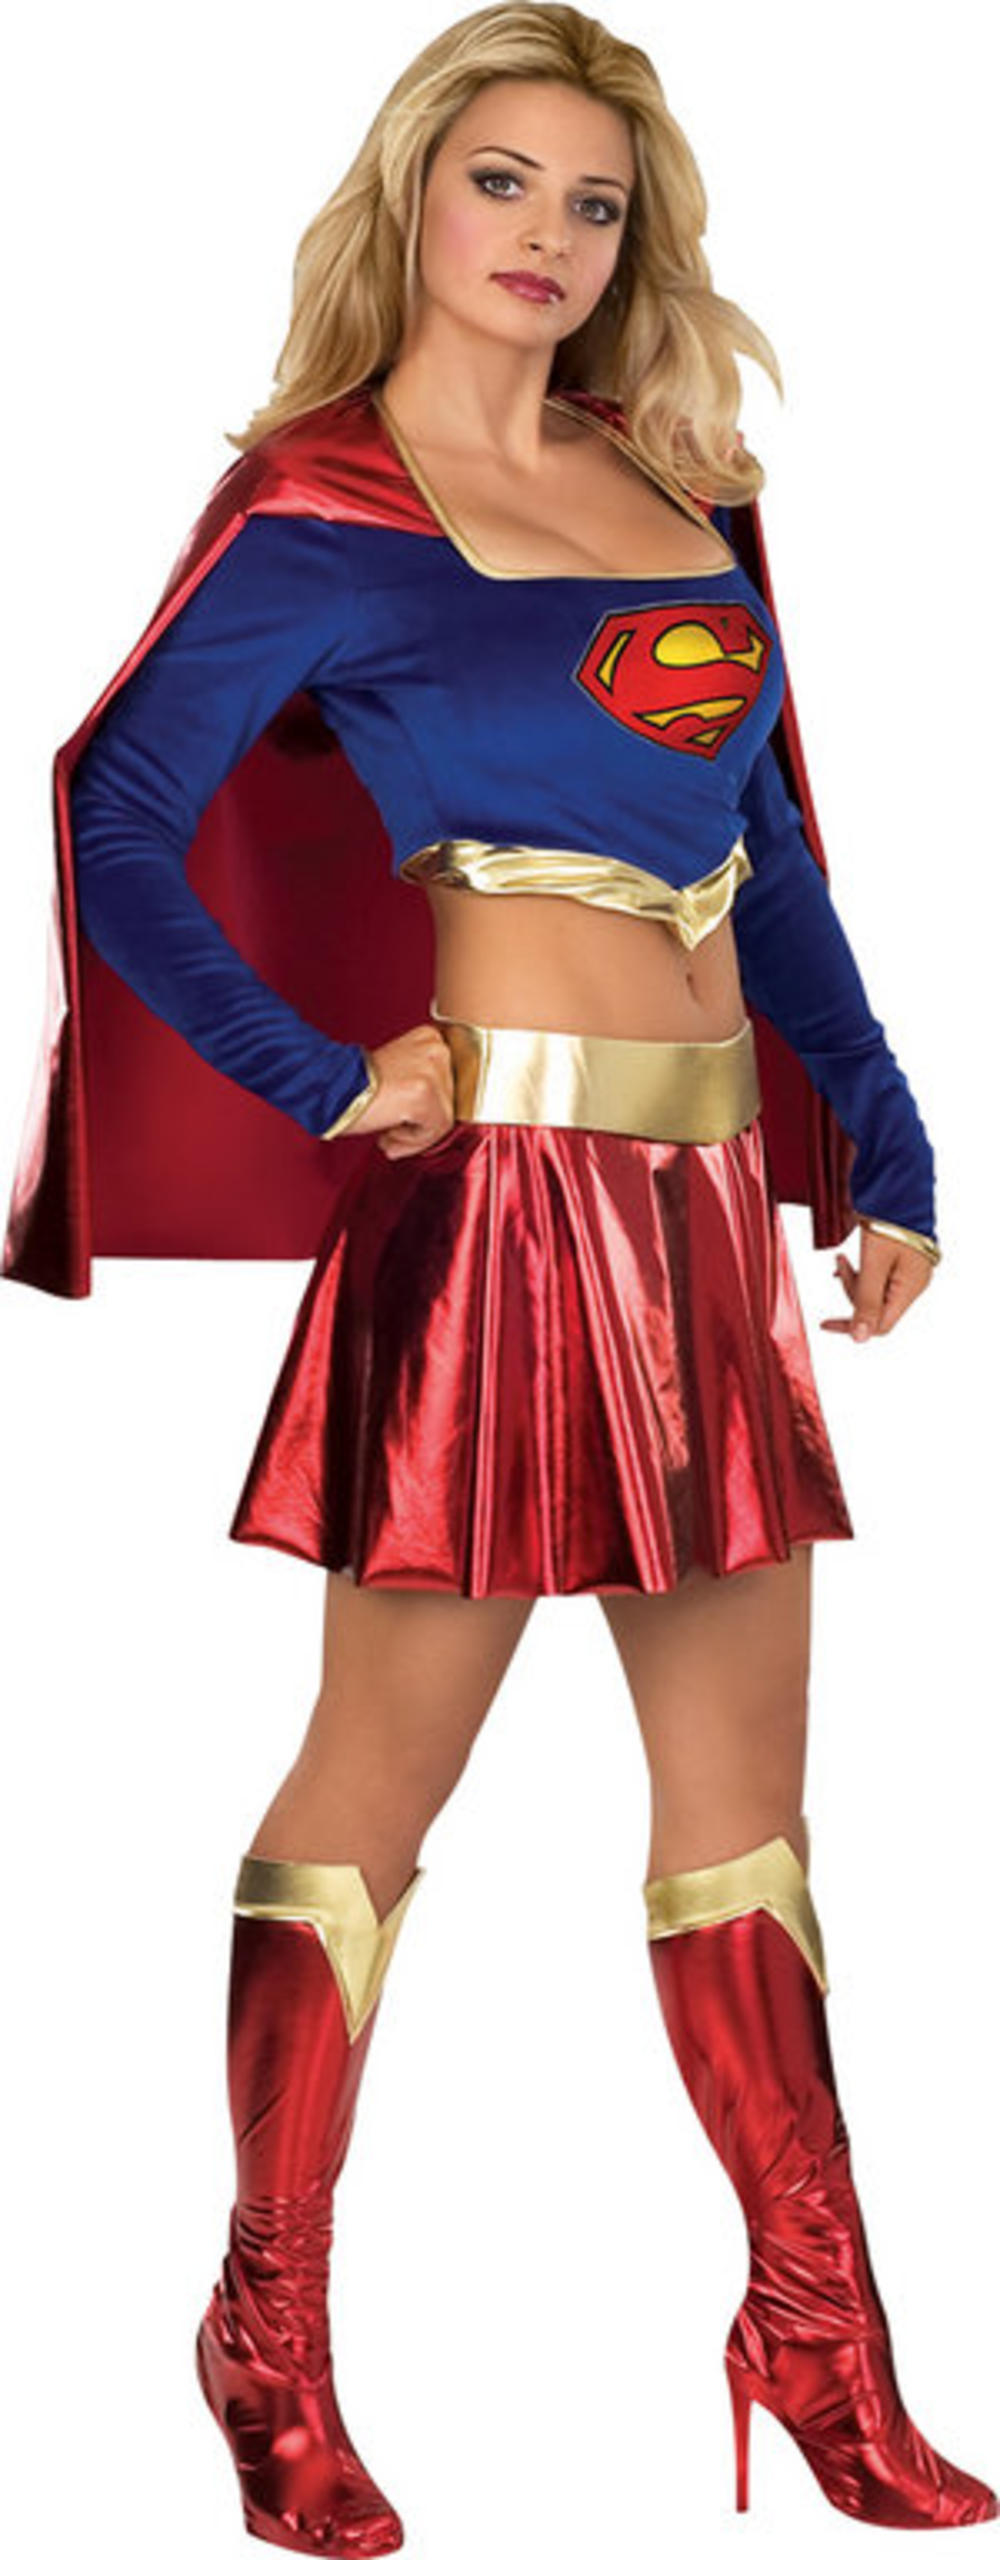 Sexy Supergirl Ladies Fancy Dress Superhero Comic Book Day Womens Adults Costume